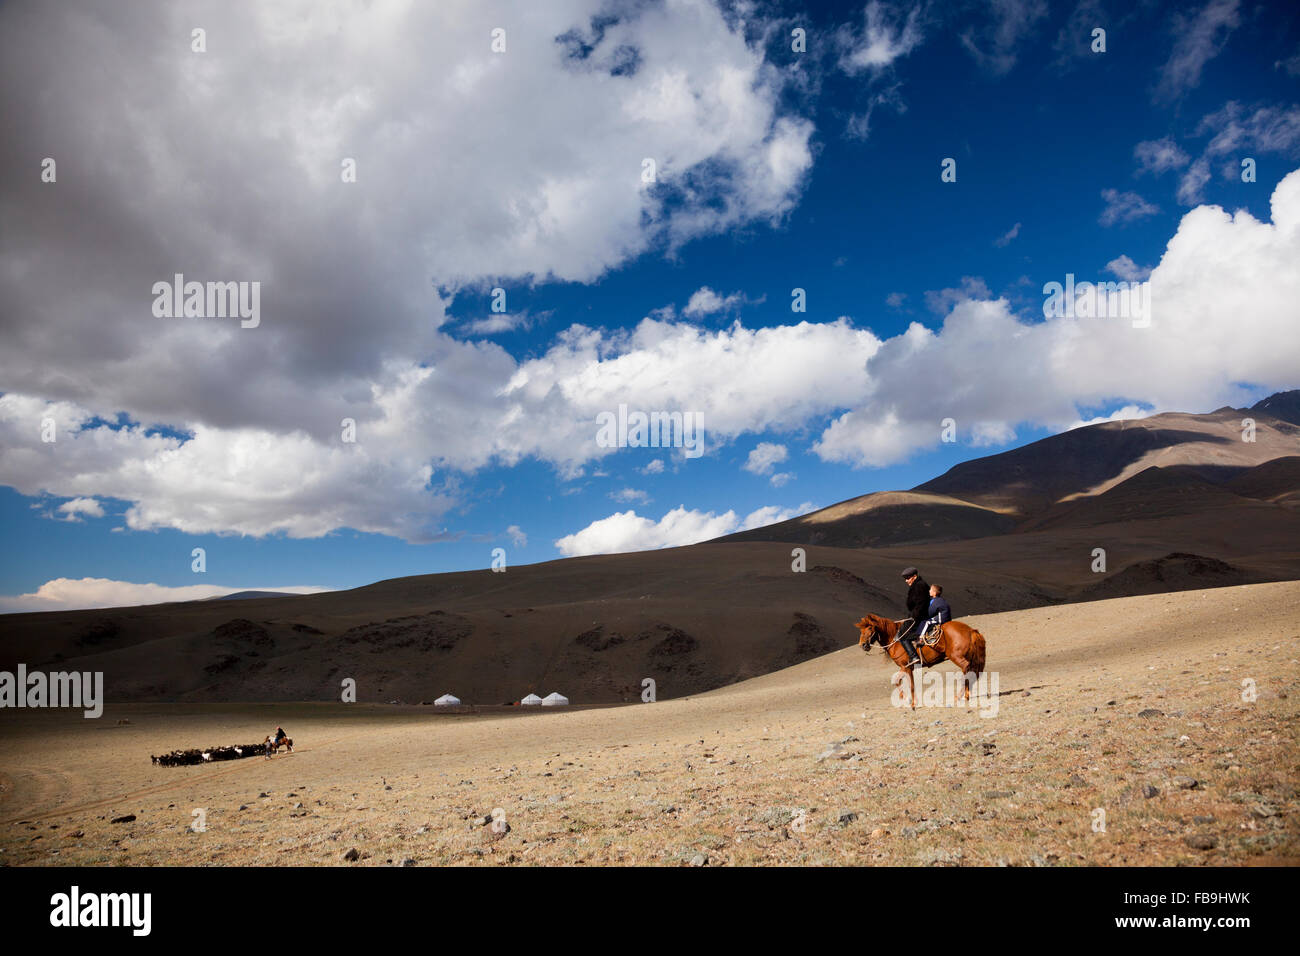 A herder watches over his animals in the Tsaast Uul valley, western Mongolia. - Stock Image